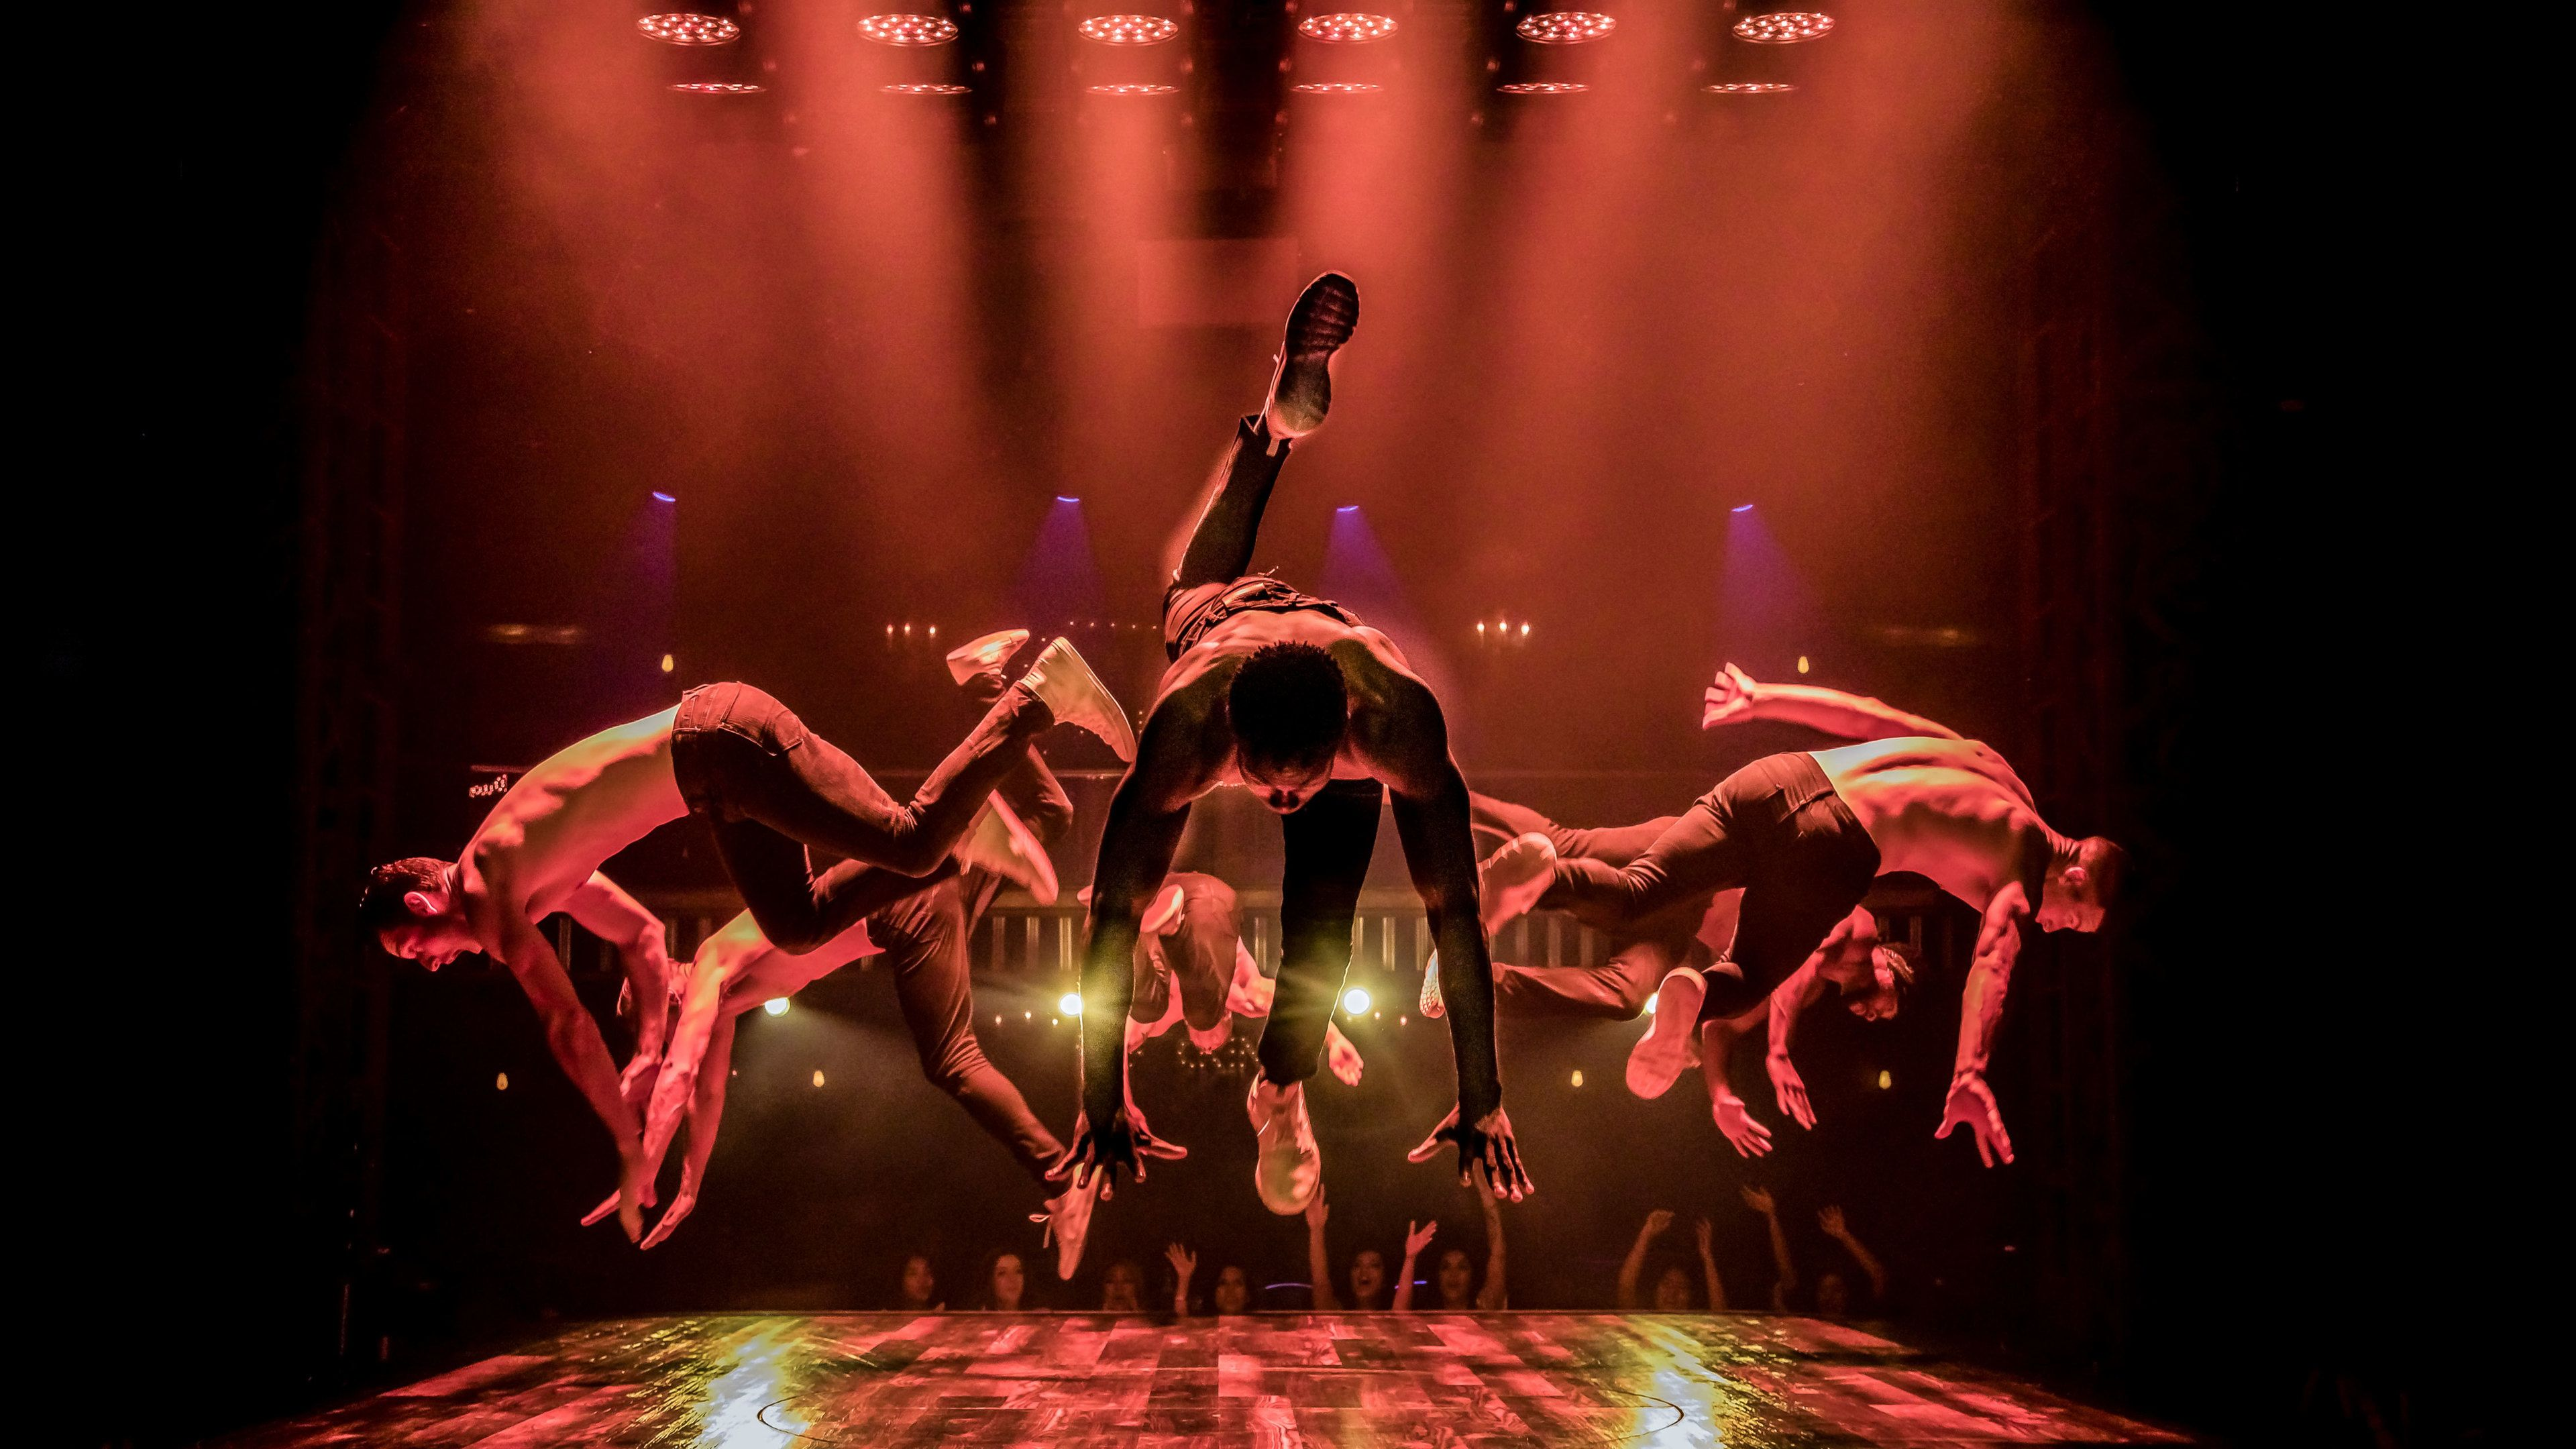 Magic Mike performers in middle of dance on stage at Hard Rock Hotel & Casino Las Vegas